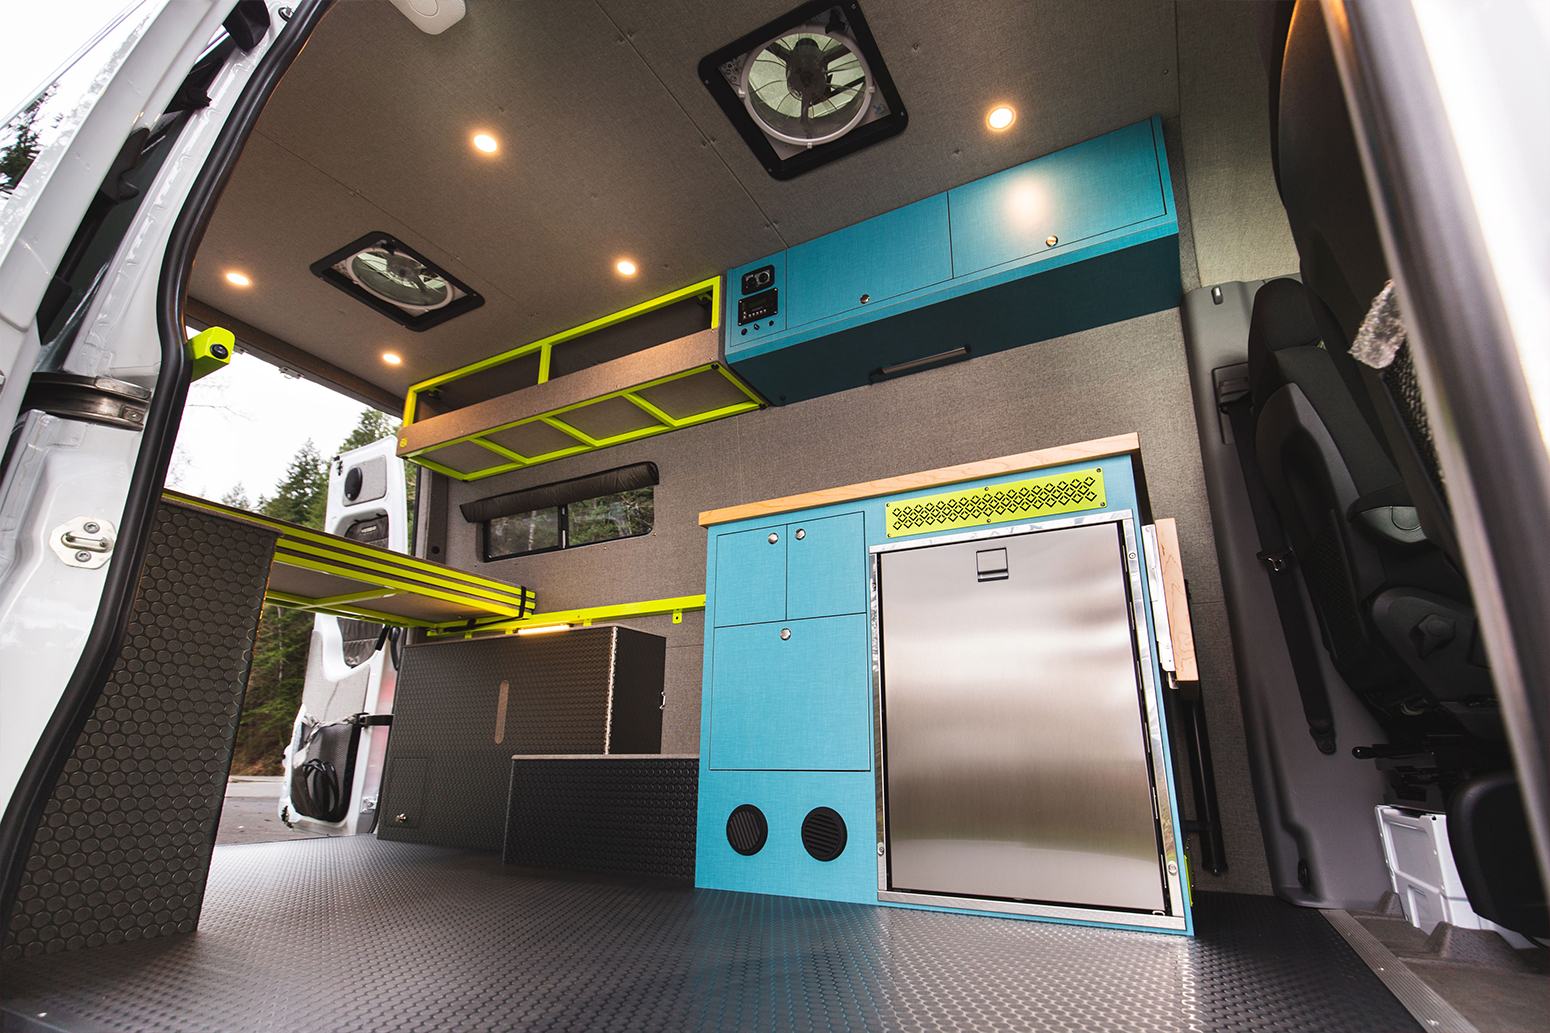 White Mercedes Sprinter van kitchen blue trimmed with green